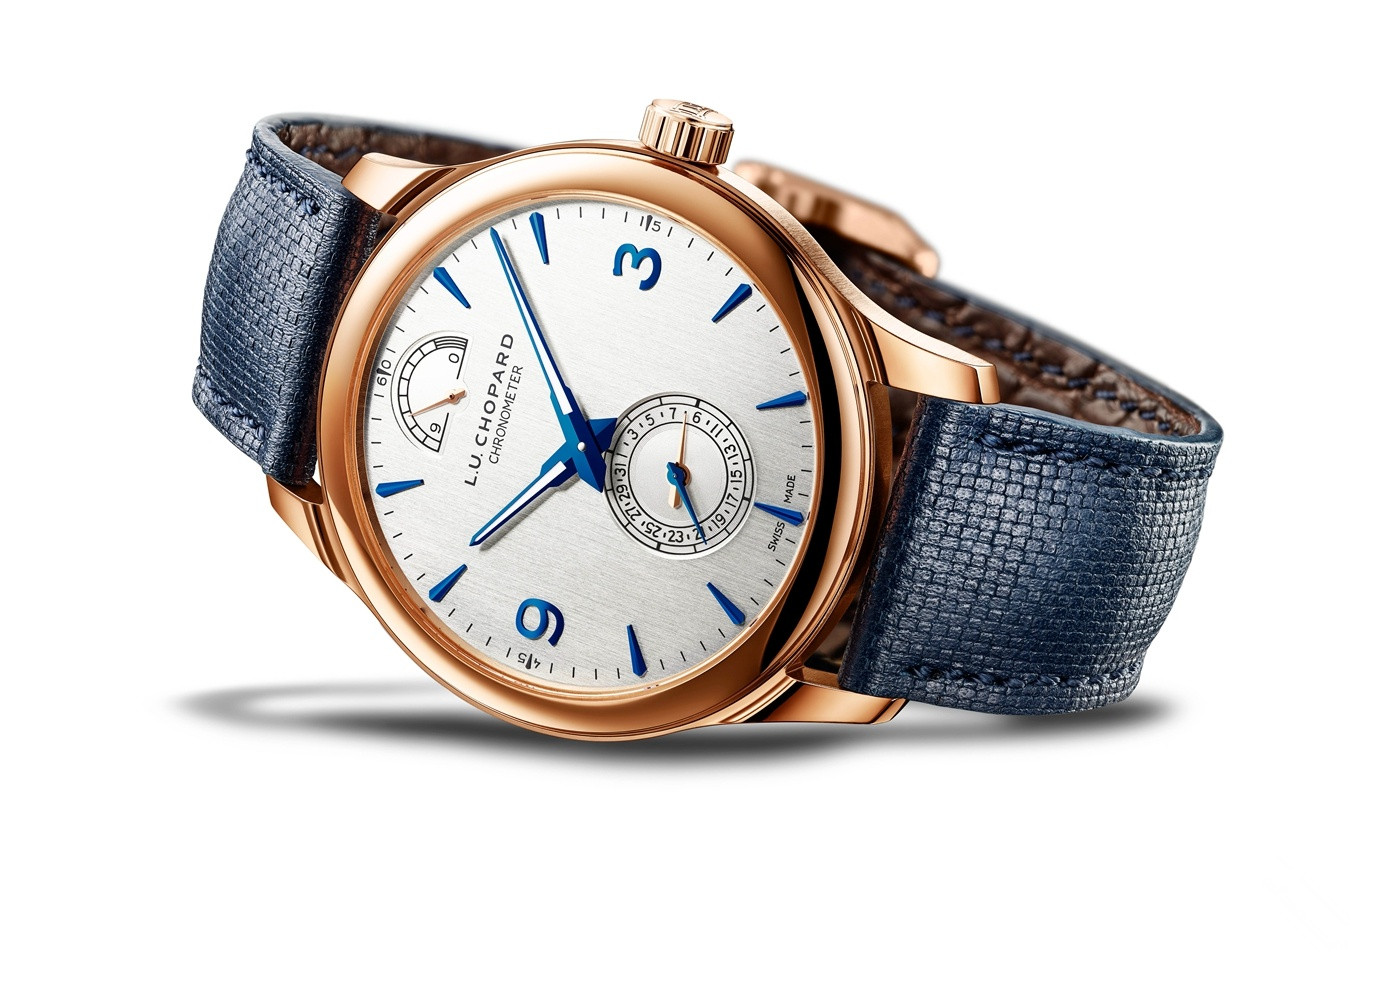 This Chopard fake watch with white dial has high texture.